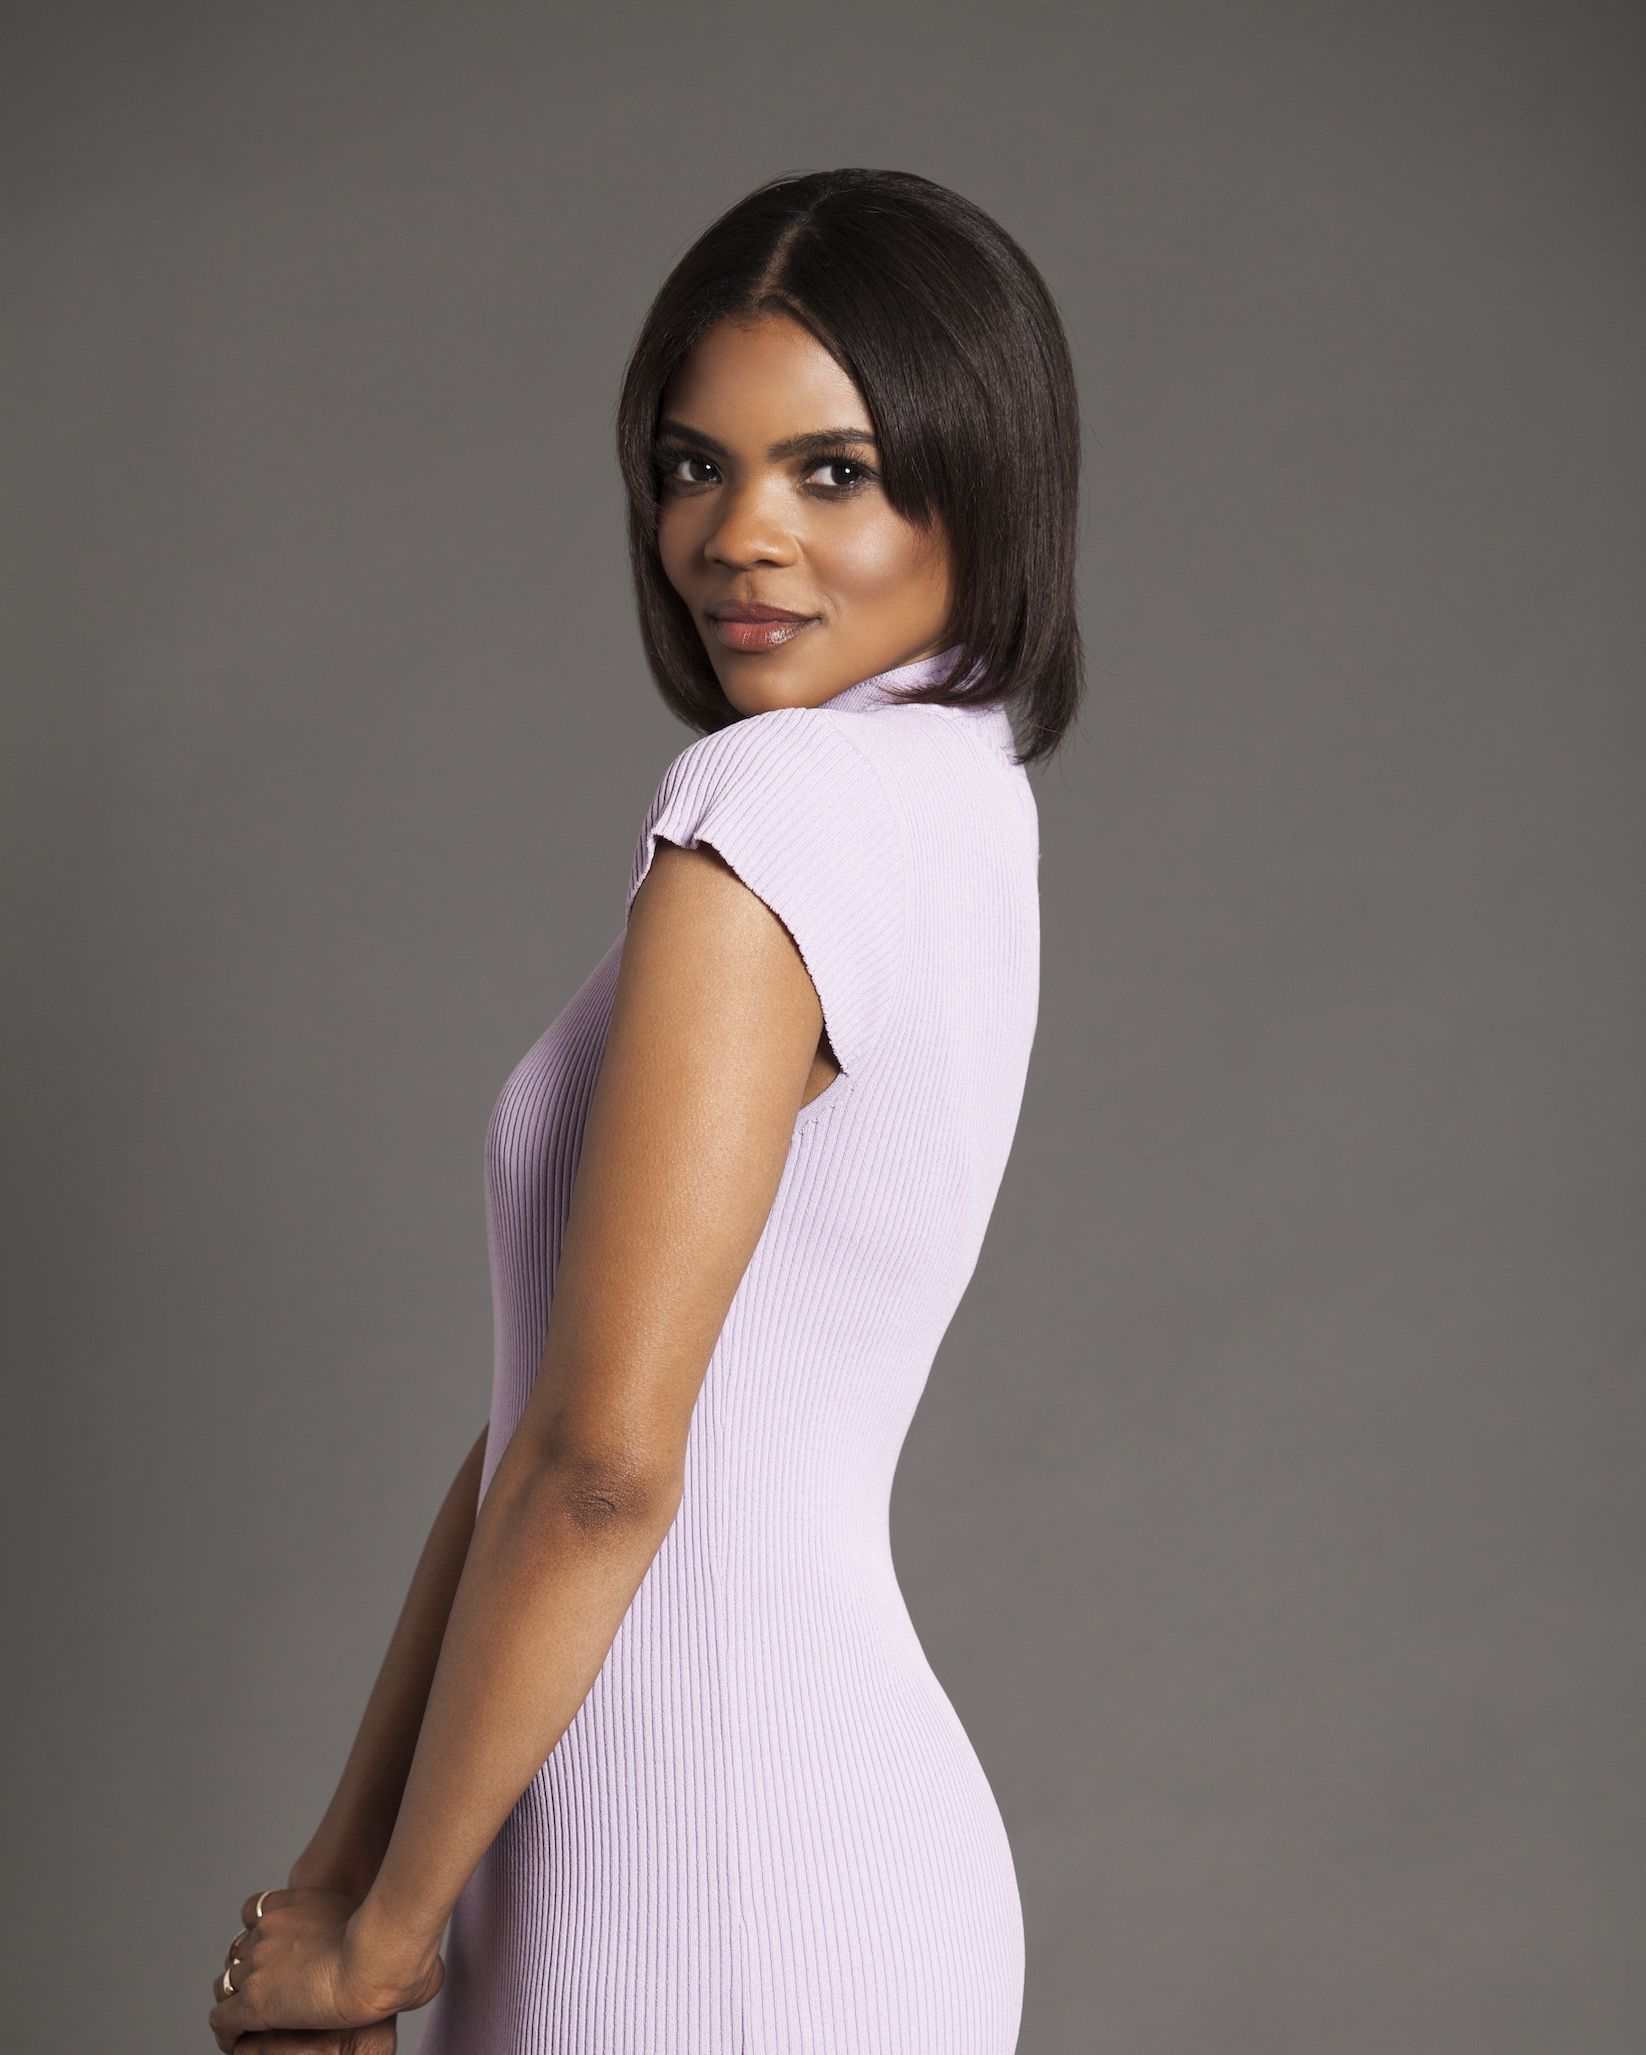 Dear Black America Candace Owens Wants To Talk About Your Future